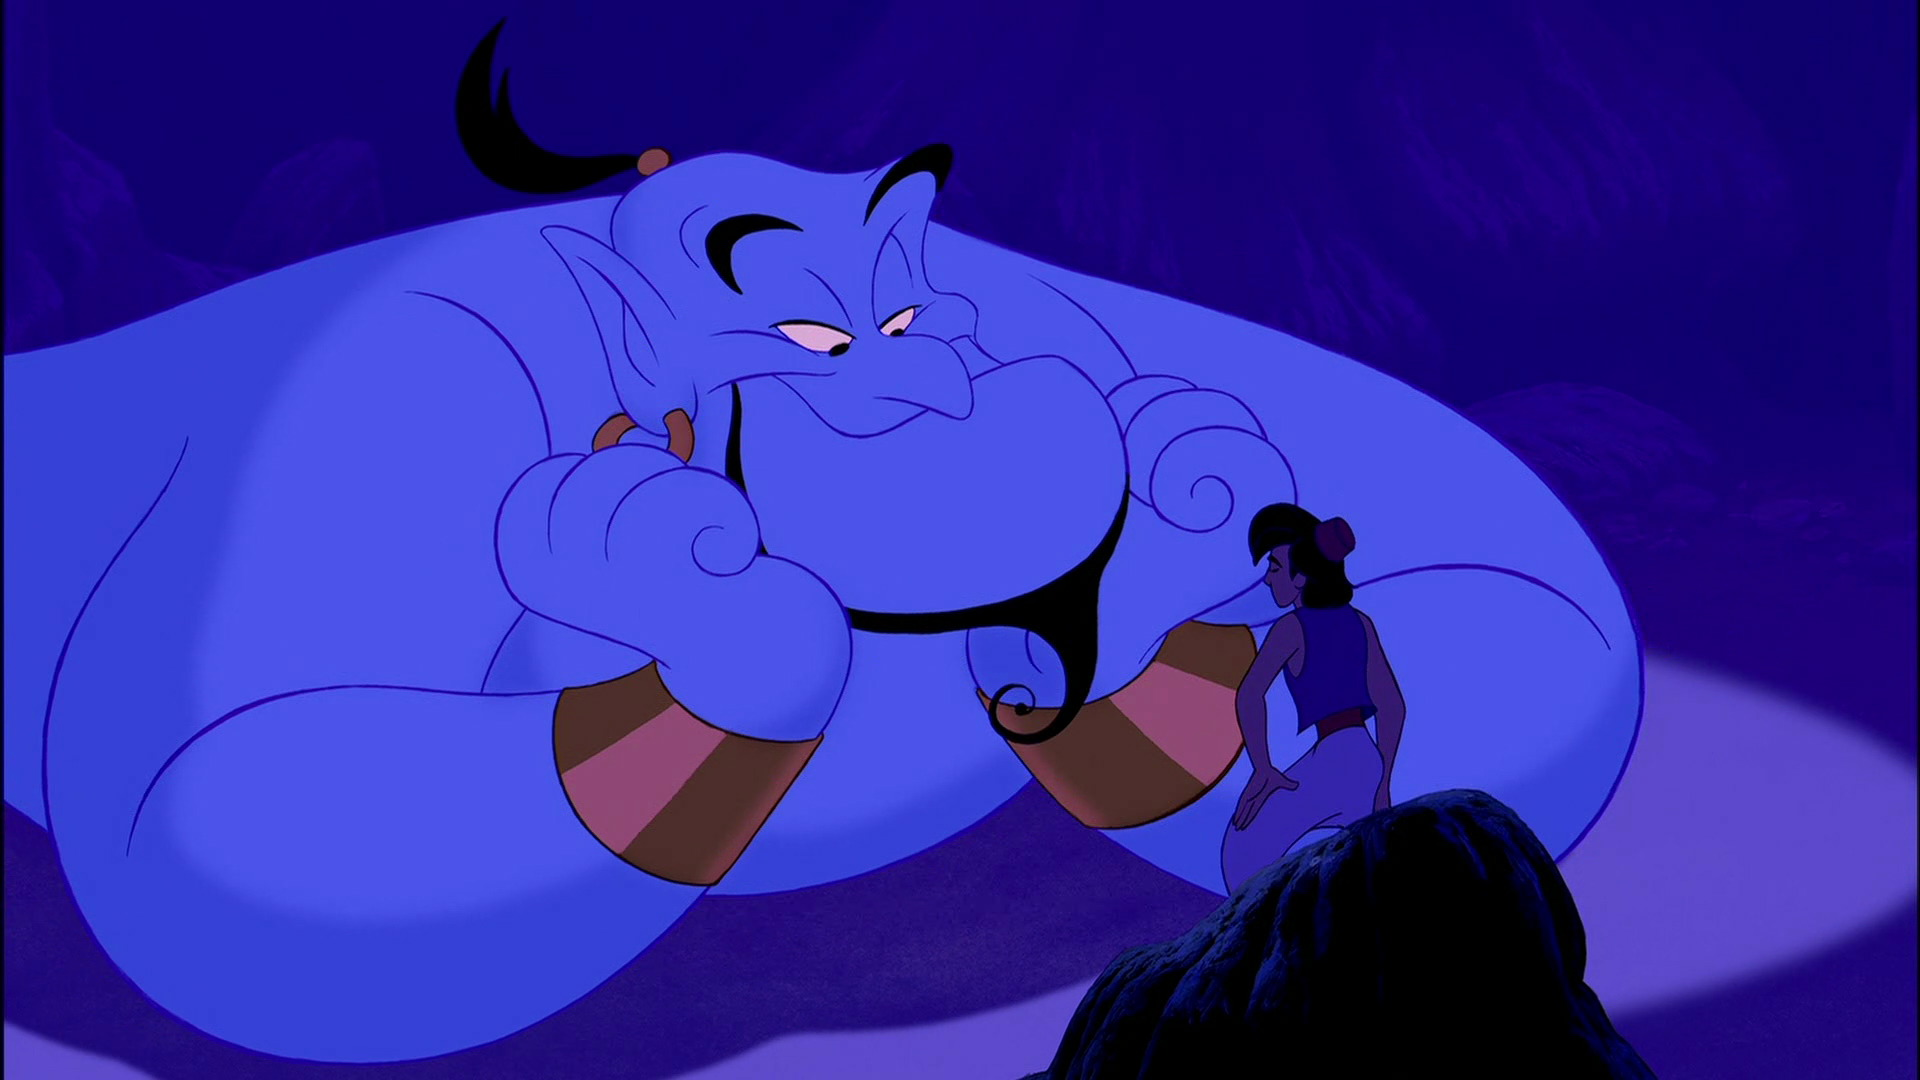 Friend Like Me Is A Song Sung By Genie The Late Robin Williams In Aladdin 1992 Film